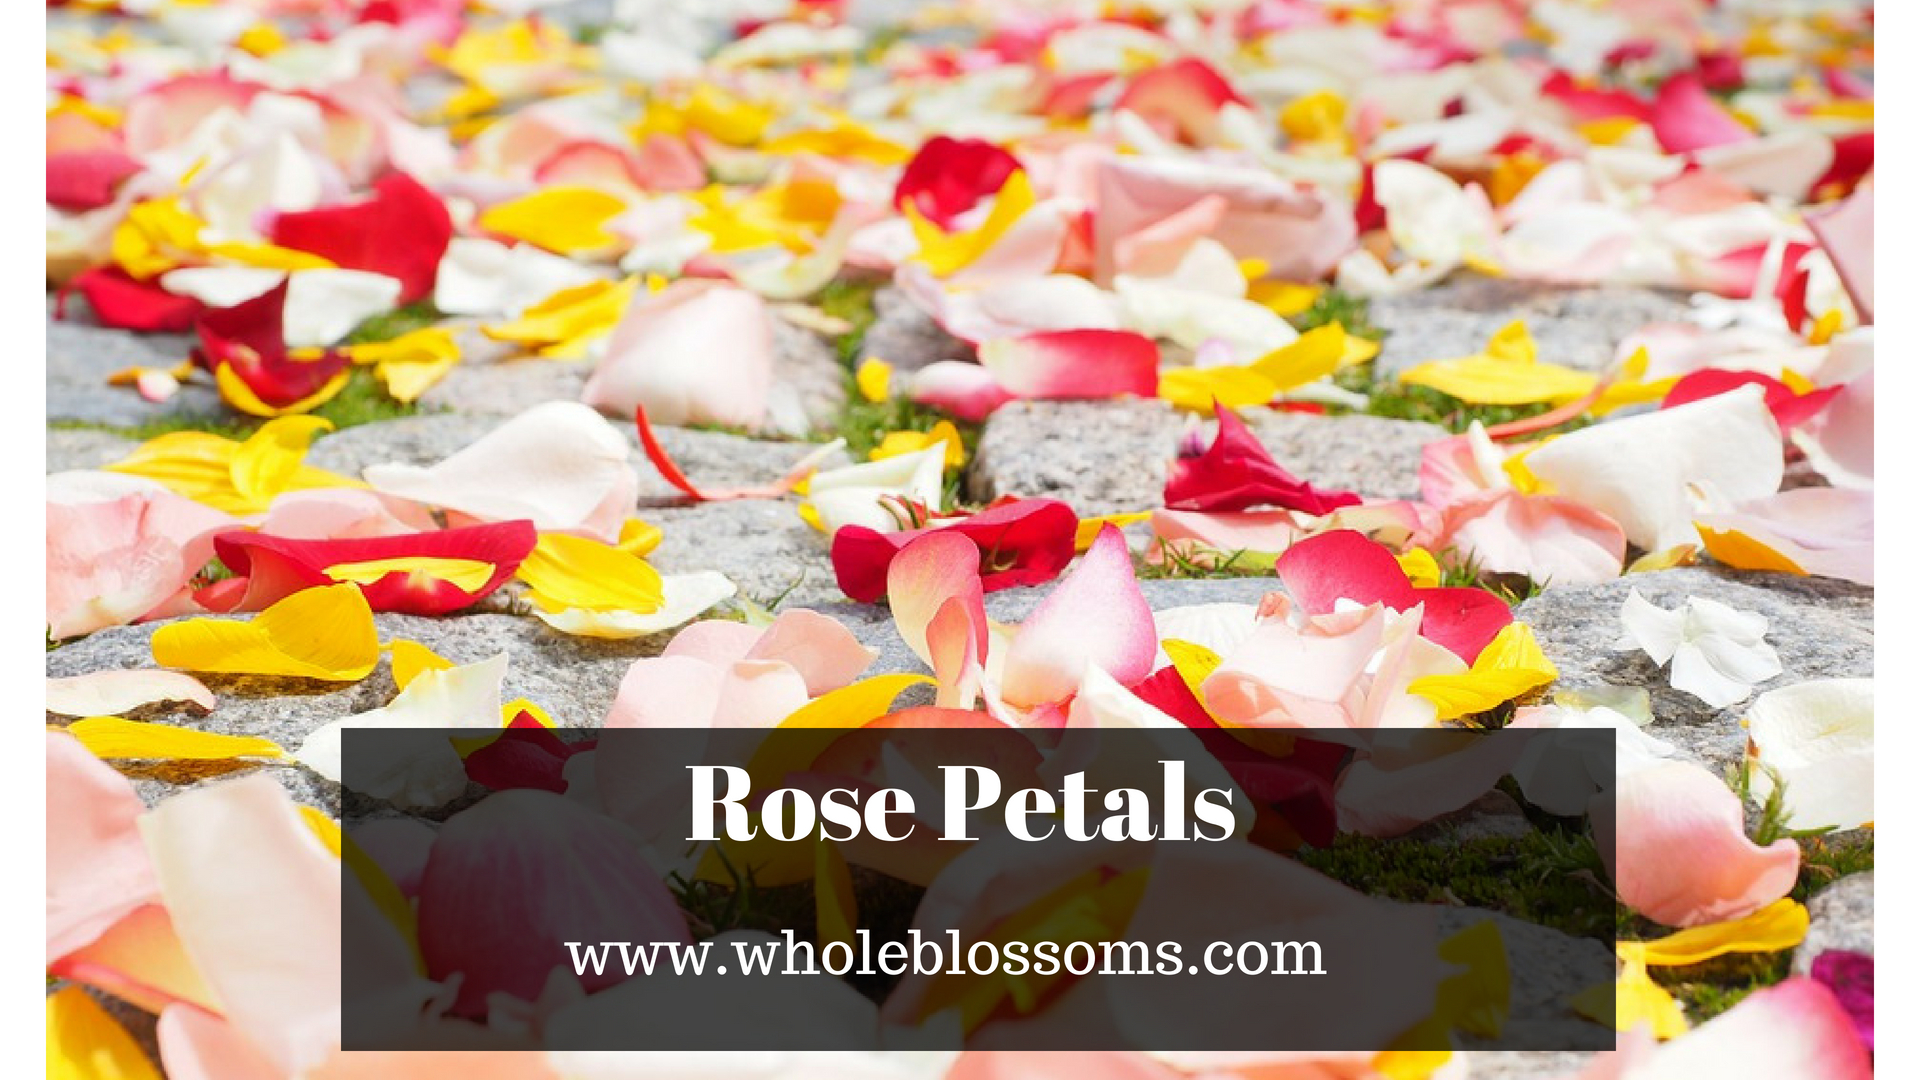 Order Beautiful Rose Petals from Whole Blossoms